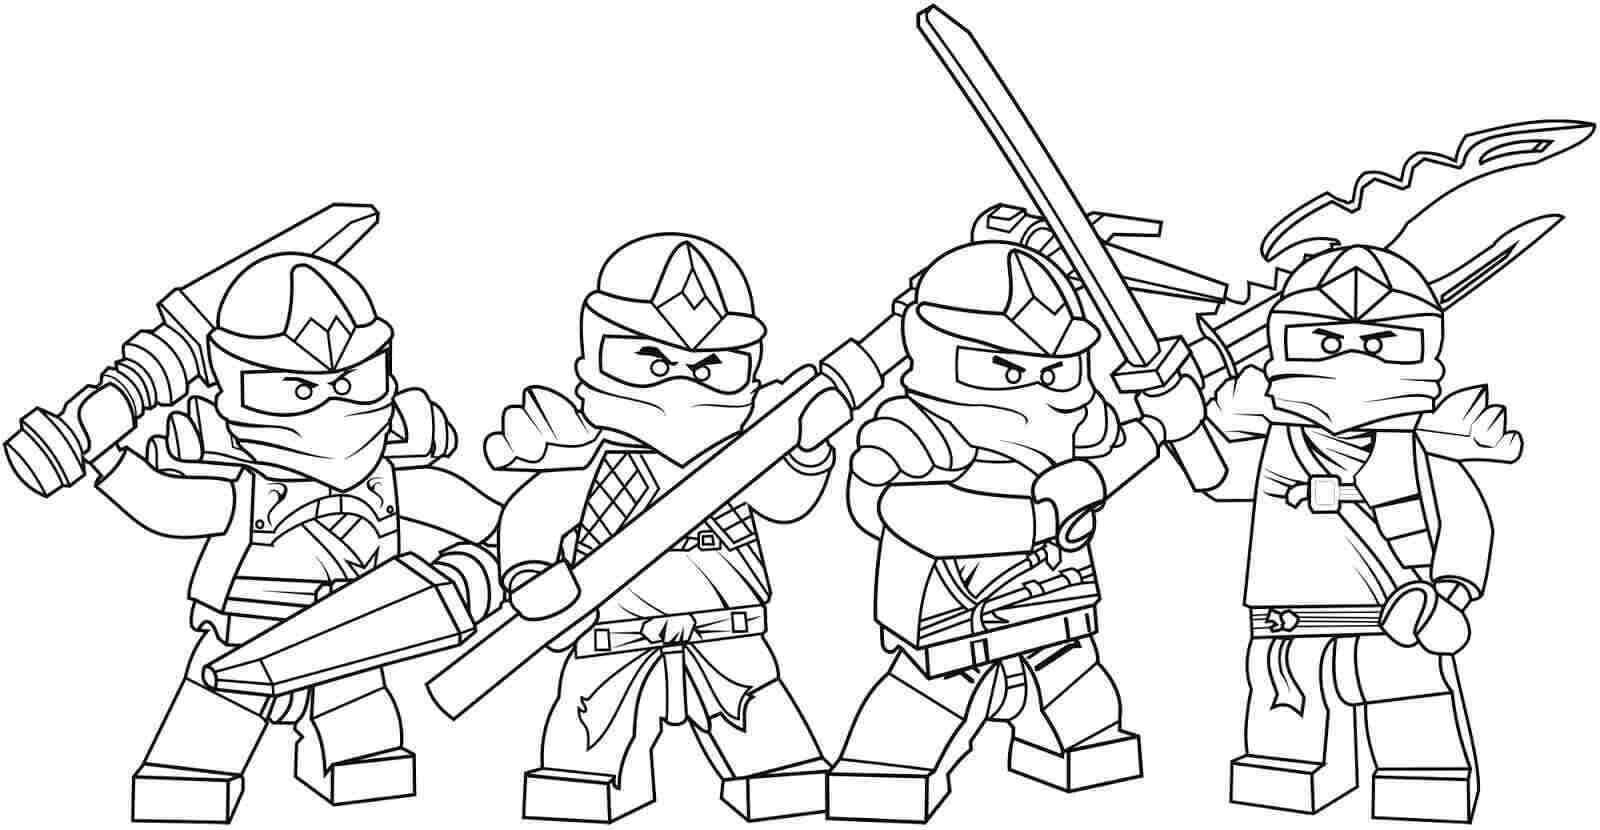 lego colouring in pages 30 free printable lego ninjago coloring pages pages colouring in lego